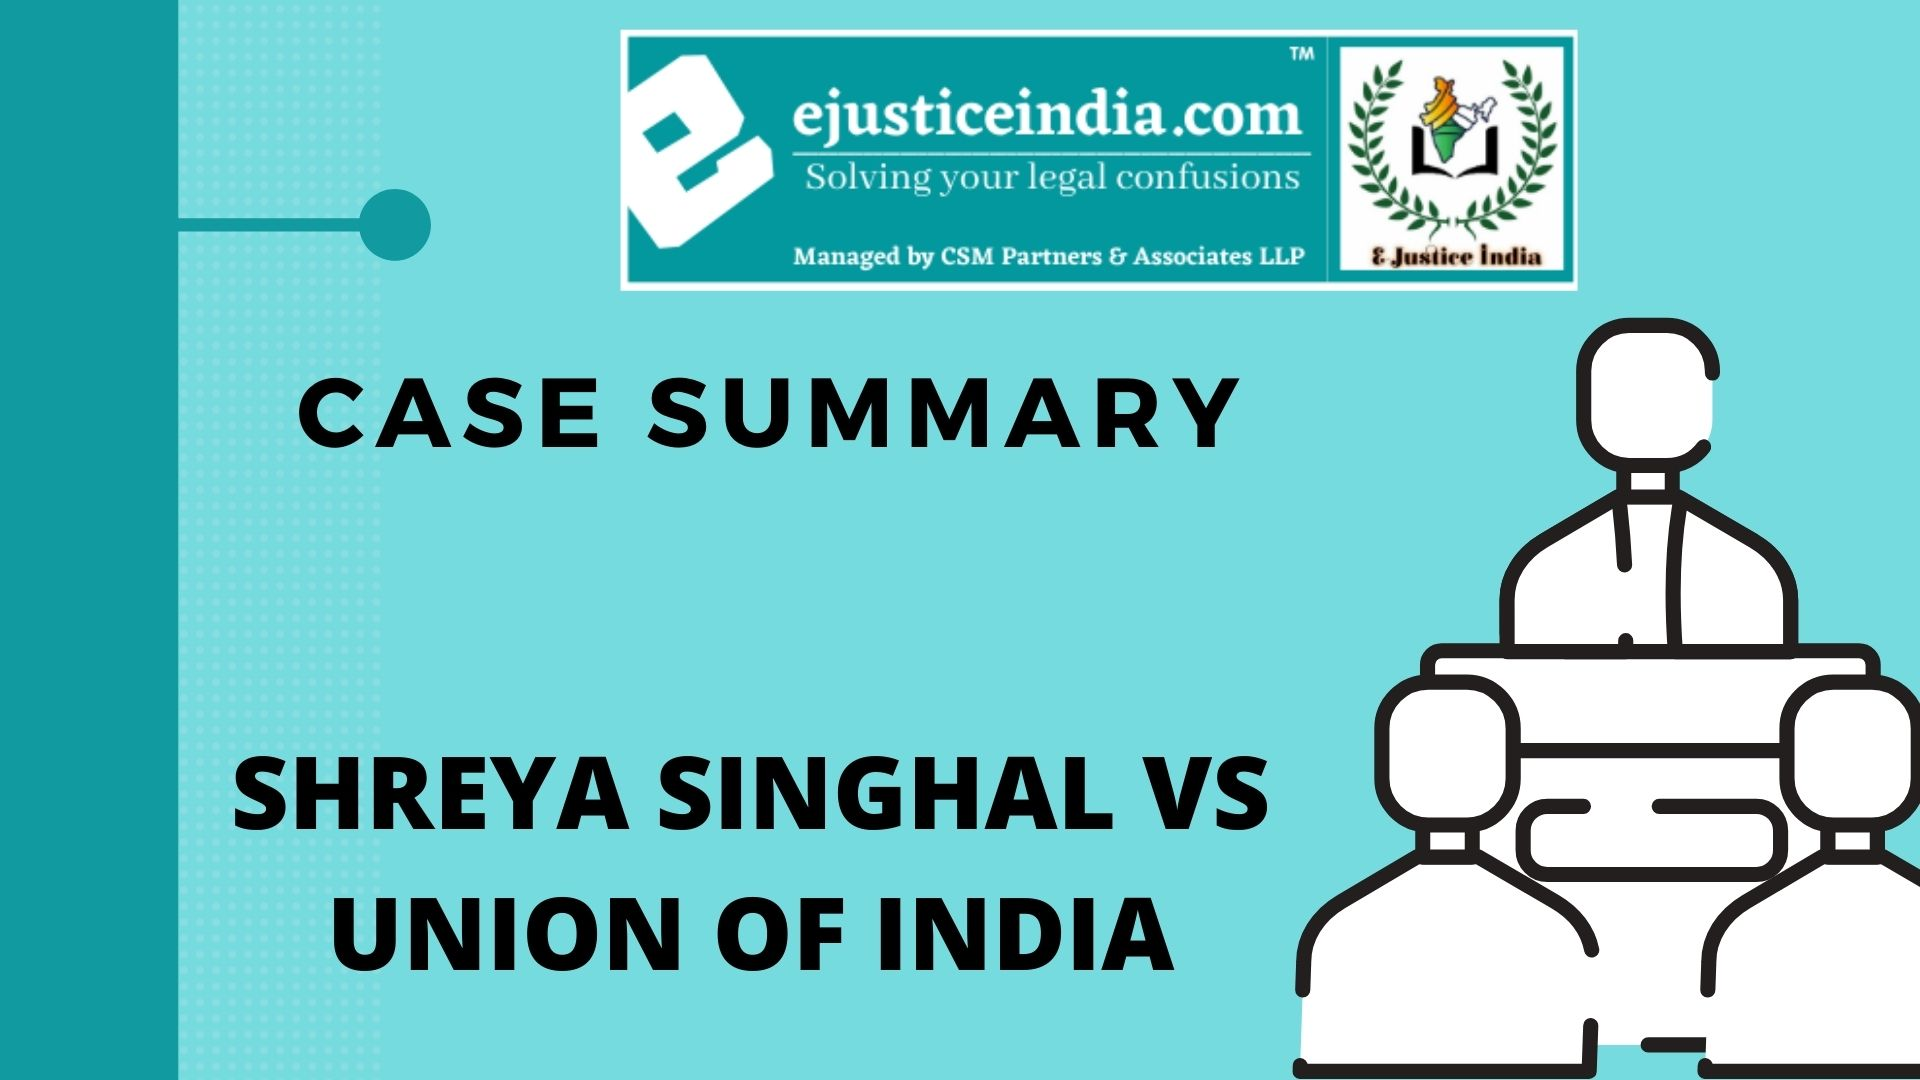 shreya singhal vs union of india Case Summary